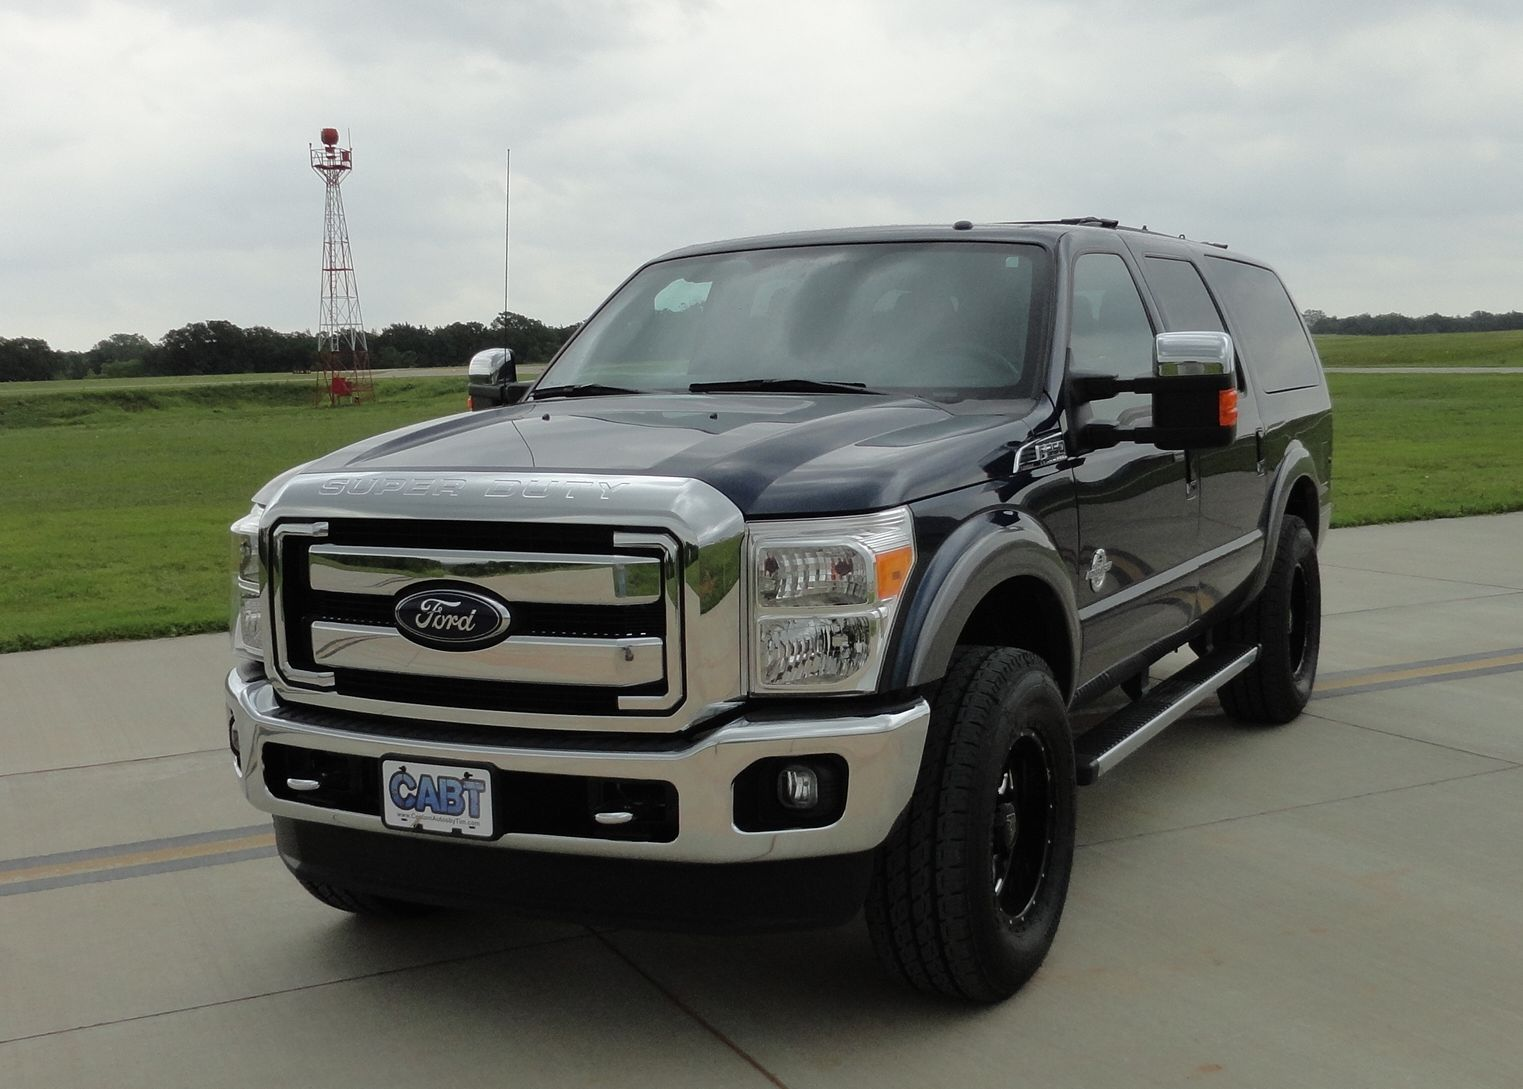 Ford Excursion 2015 >> 2015 Ford Excursion Icons 7 Deadly Sins Pinterest Ford